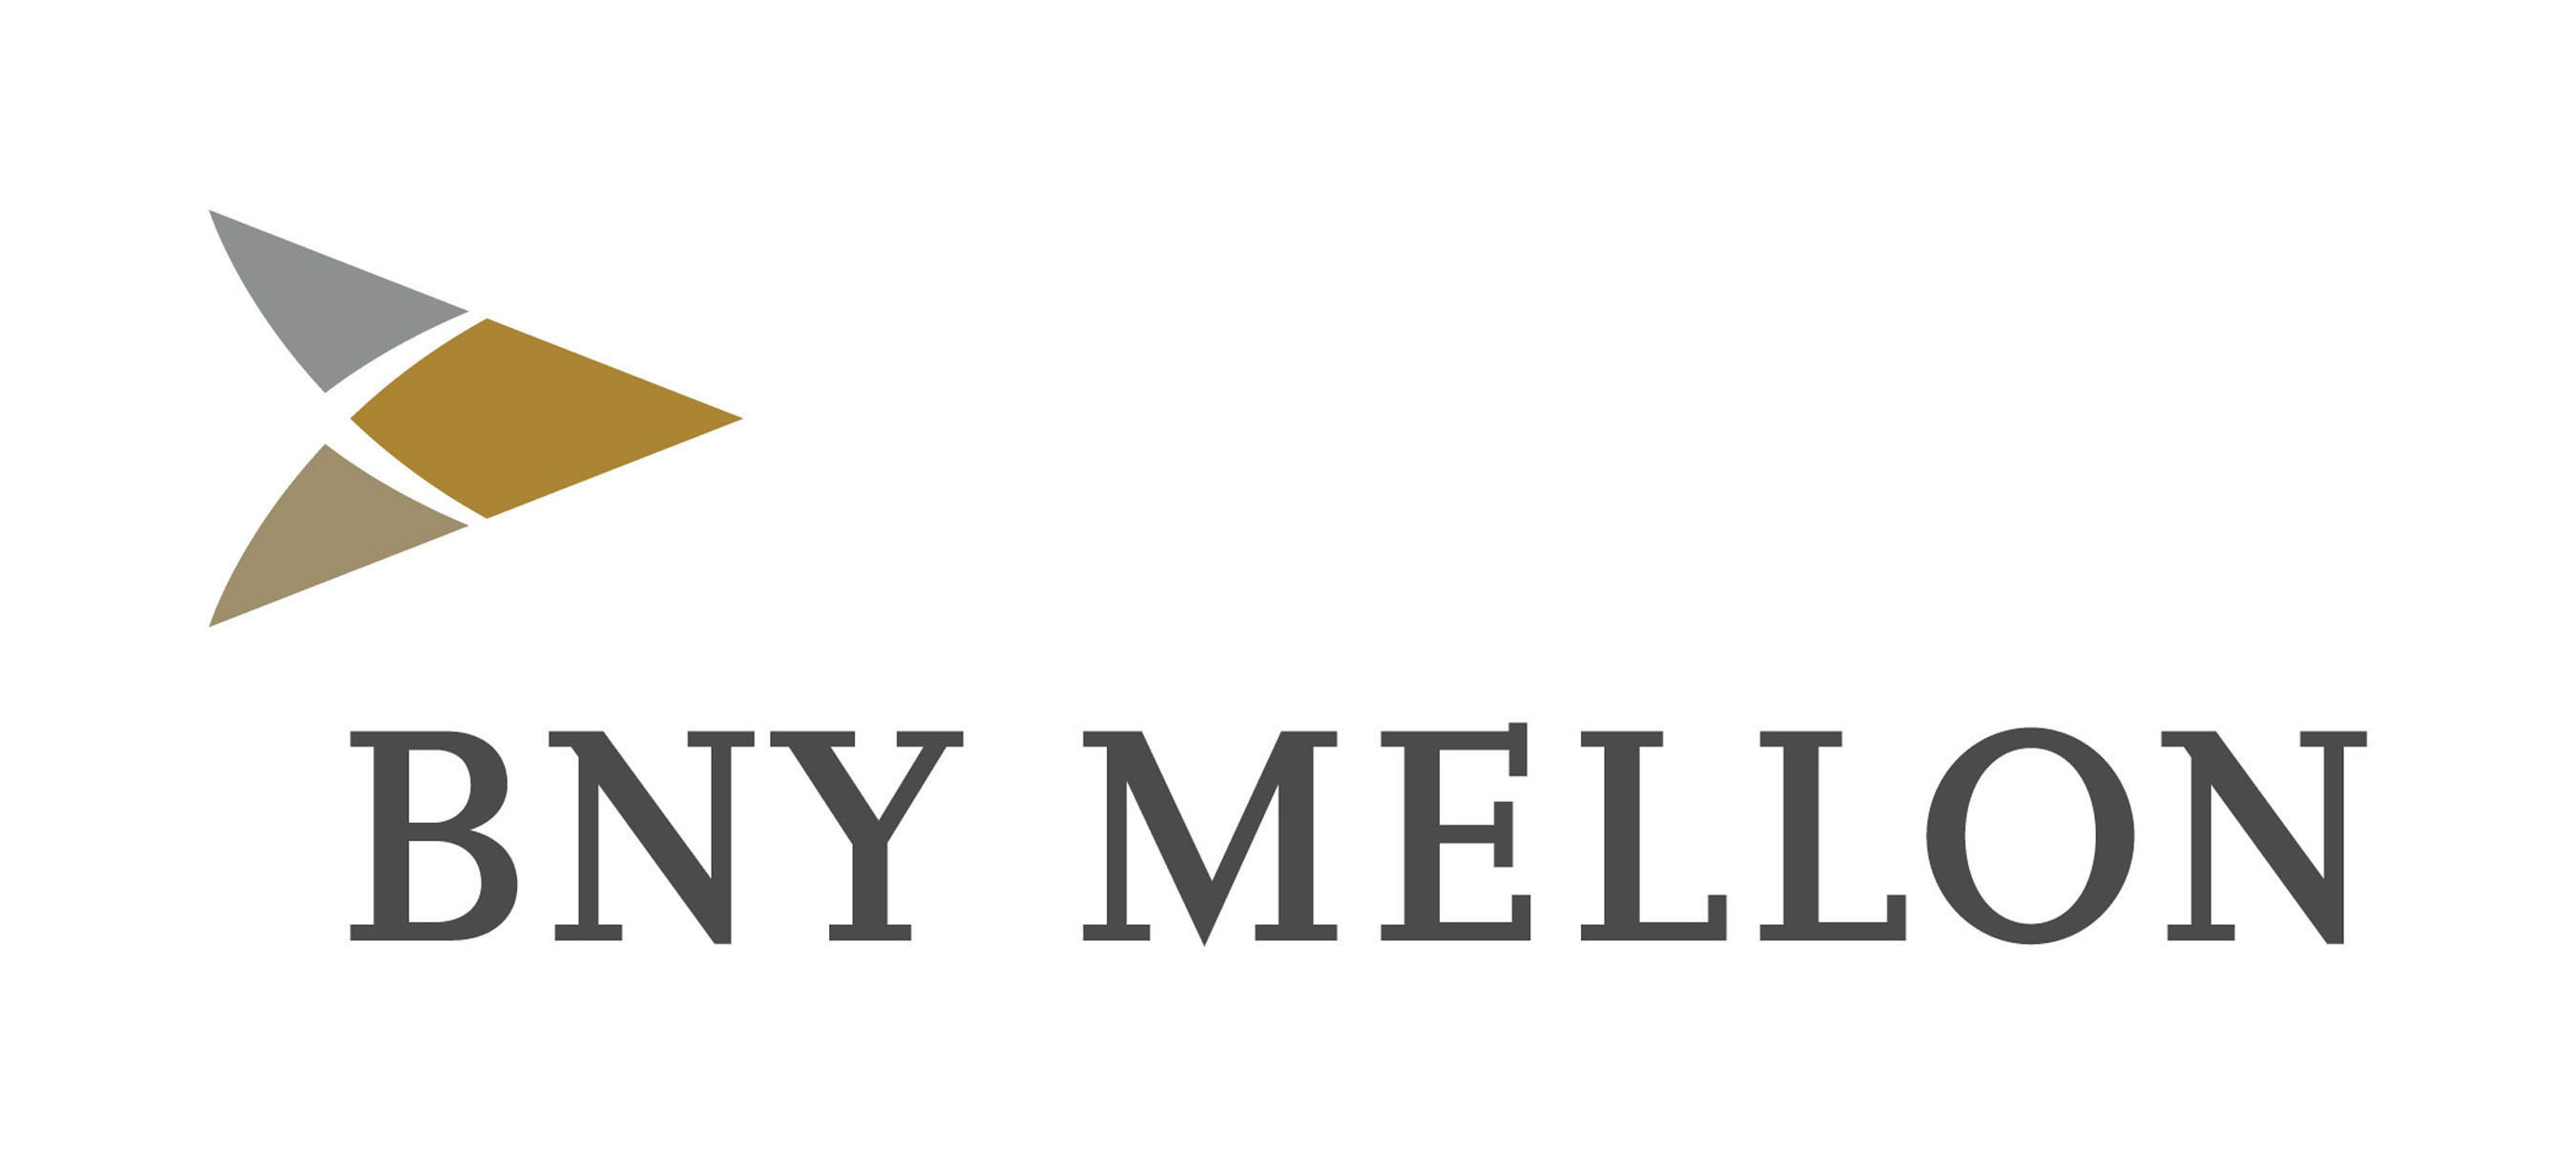 BNY Mellon automates global payment inquiries, becoming the first US bank to offer SWIFT gpi Case Resolution service